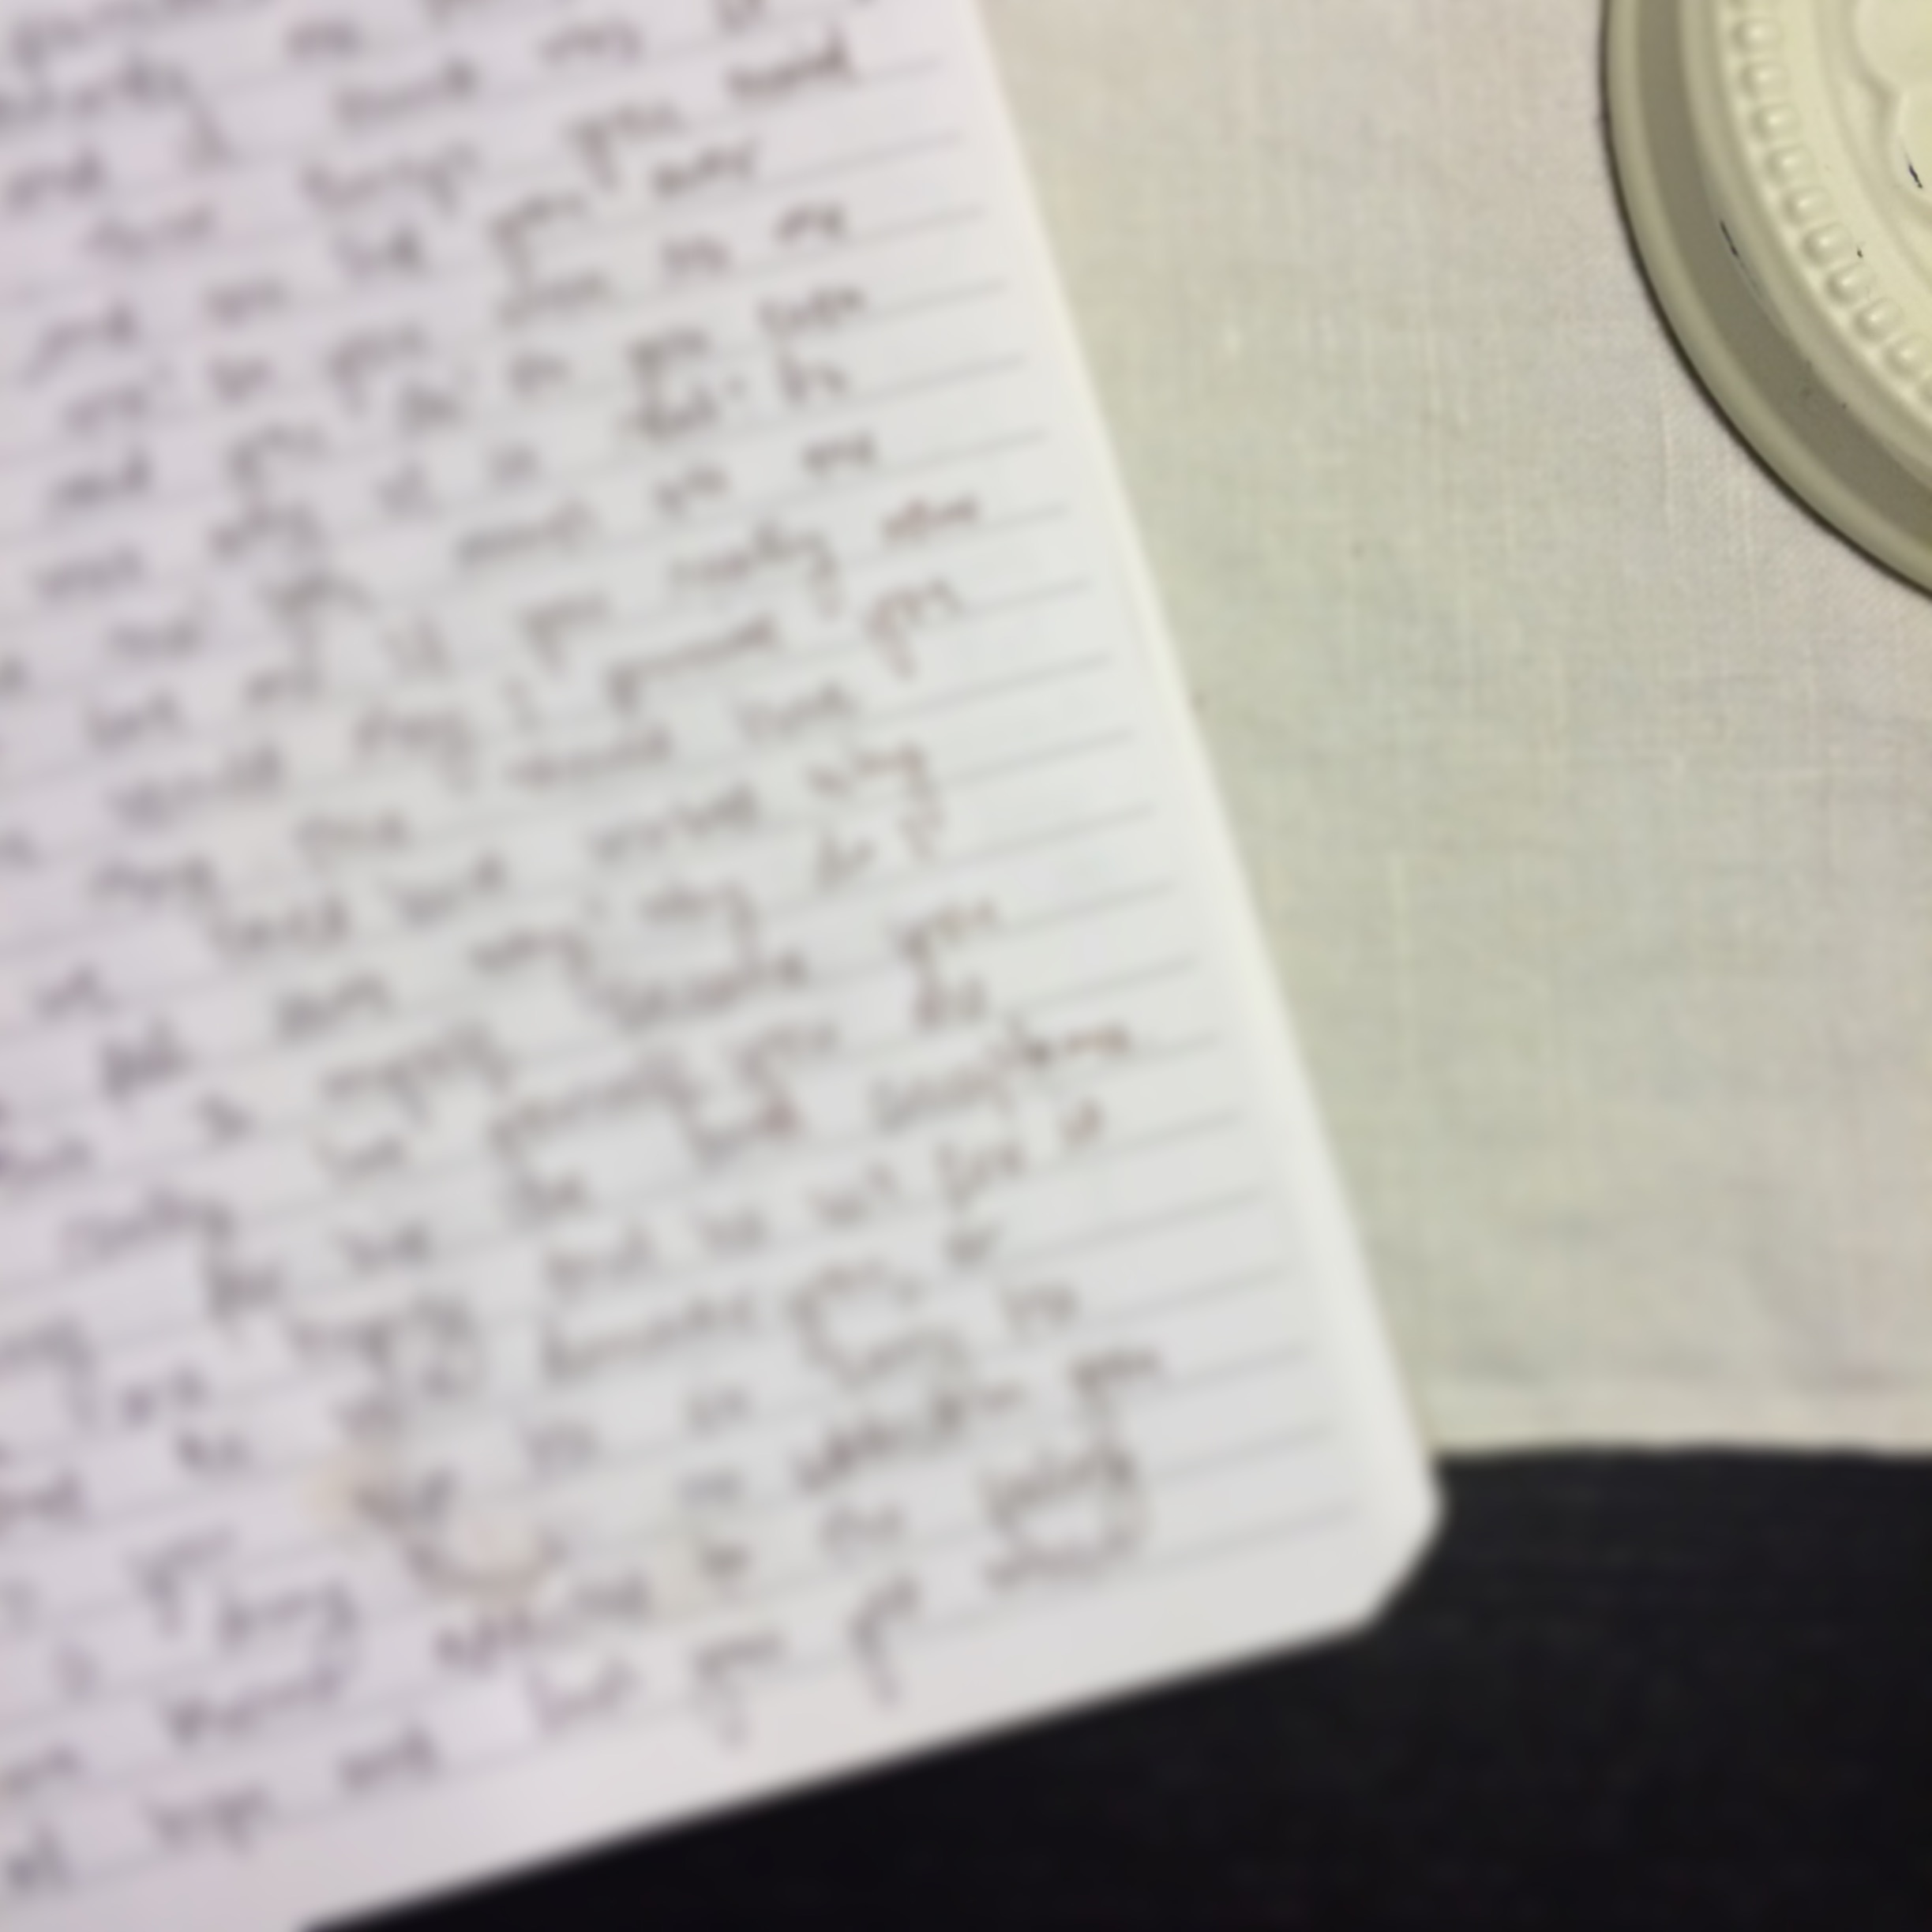 I finally started to enjoy/see the benefits of journaling on a regular basis.